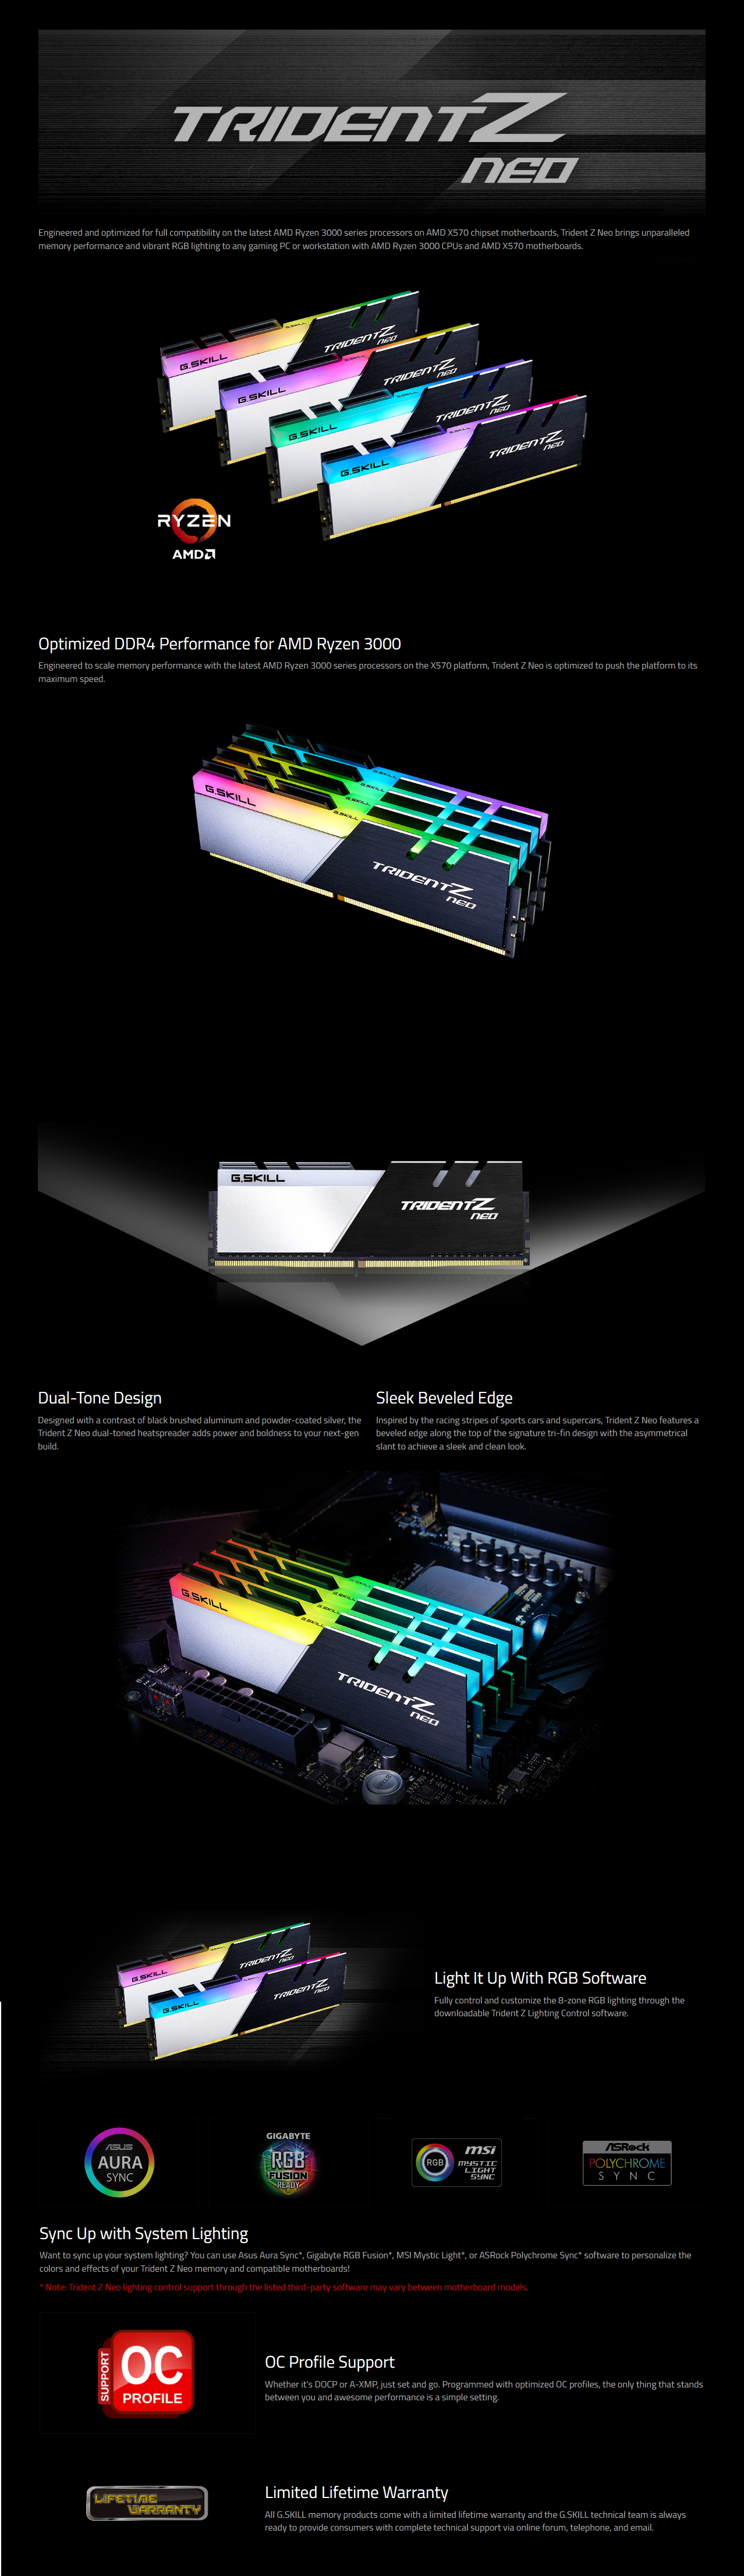 A large marketing image providing additional information about the product G.Skill 32GB Kit (4x8GB) DDR4 Trident Z RGB Neo C18 3600Mhz - Additional alt info not provided